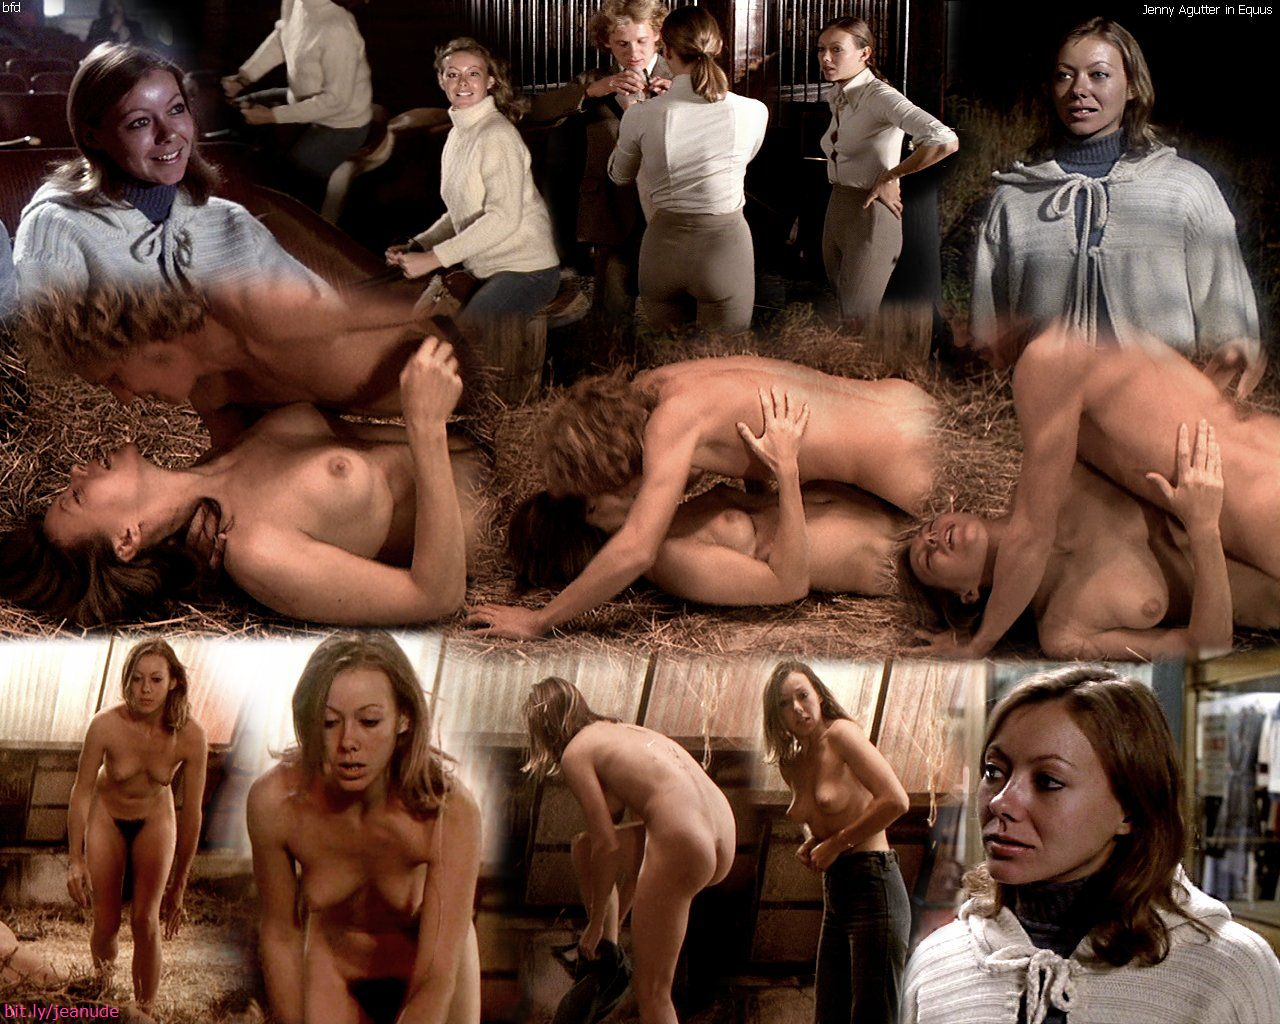 Opinion Nude run jenny agutter quite good